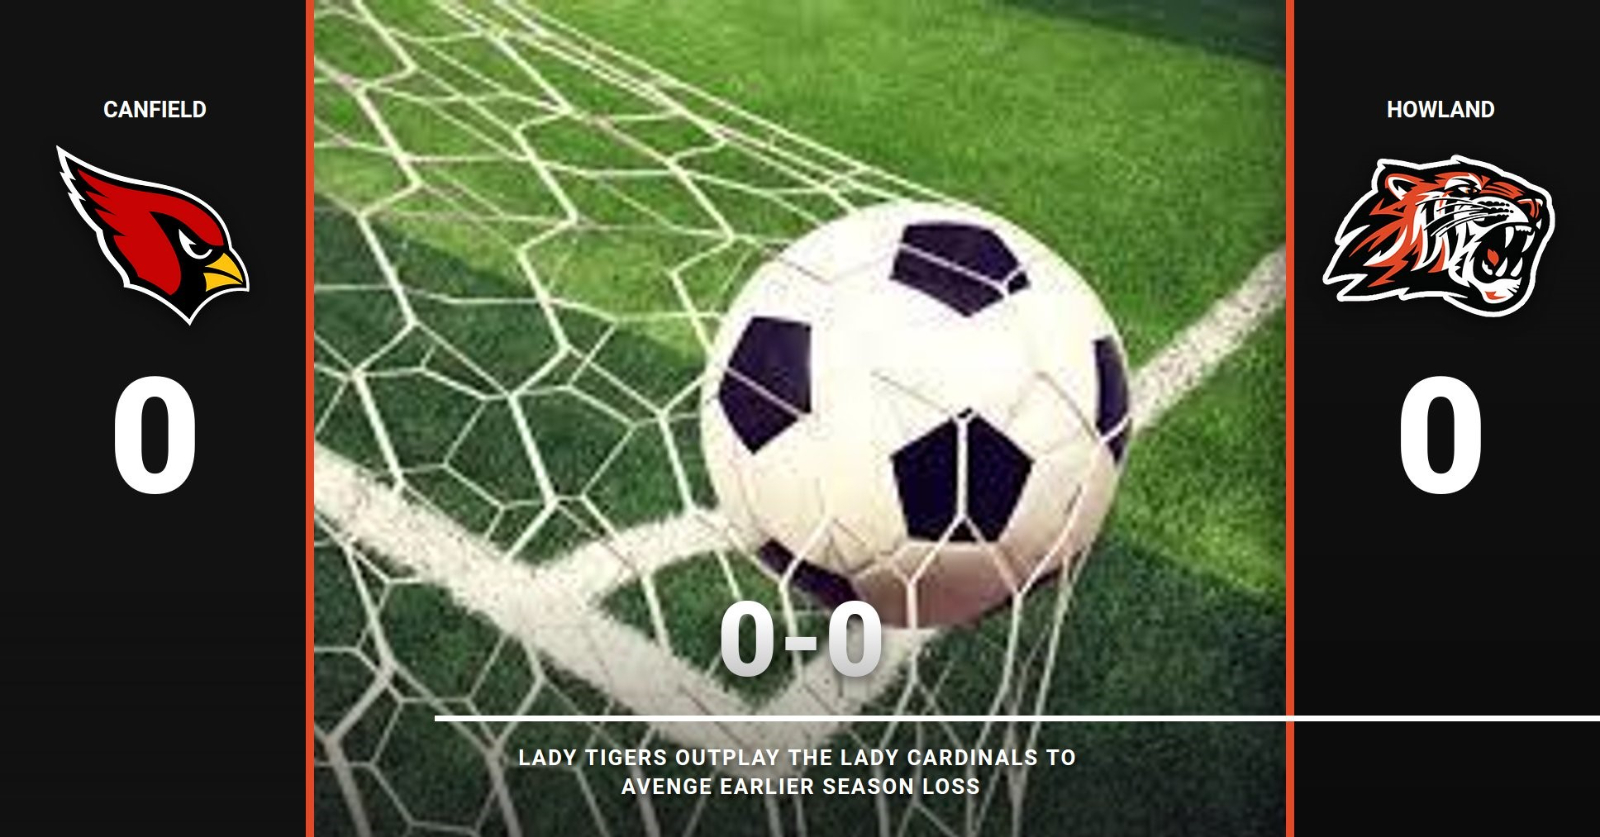 LADY TIGERS OUTPLAY THE LADY CARDINALS IN 0-0 DRAW